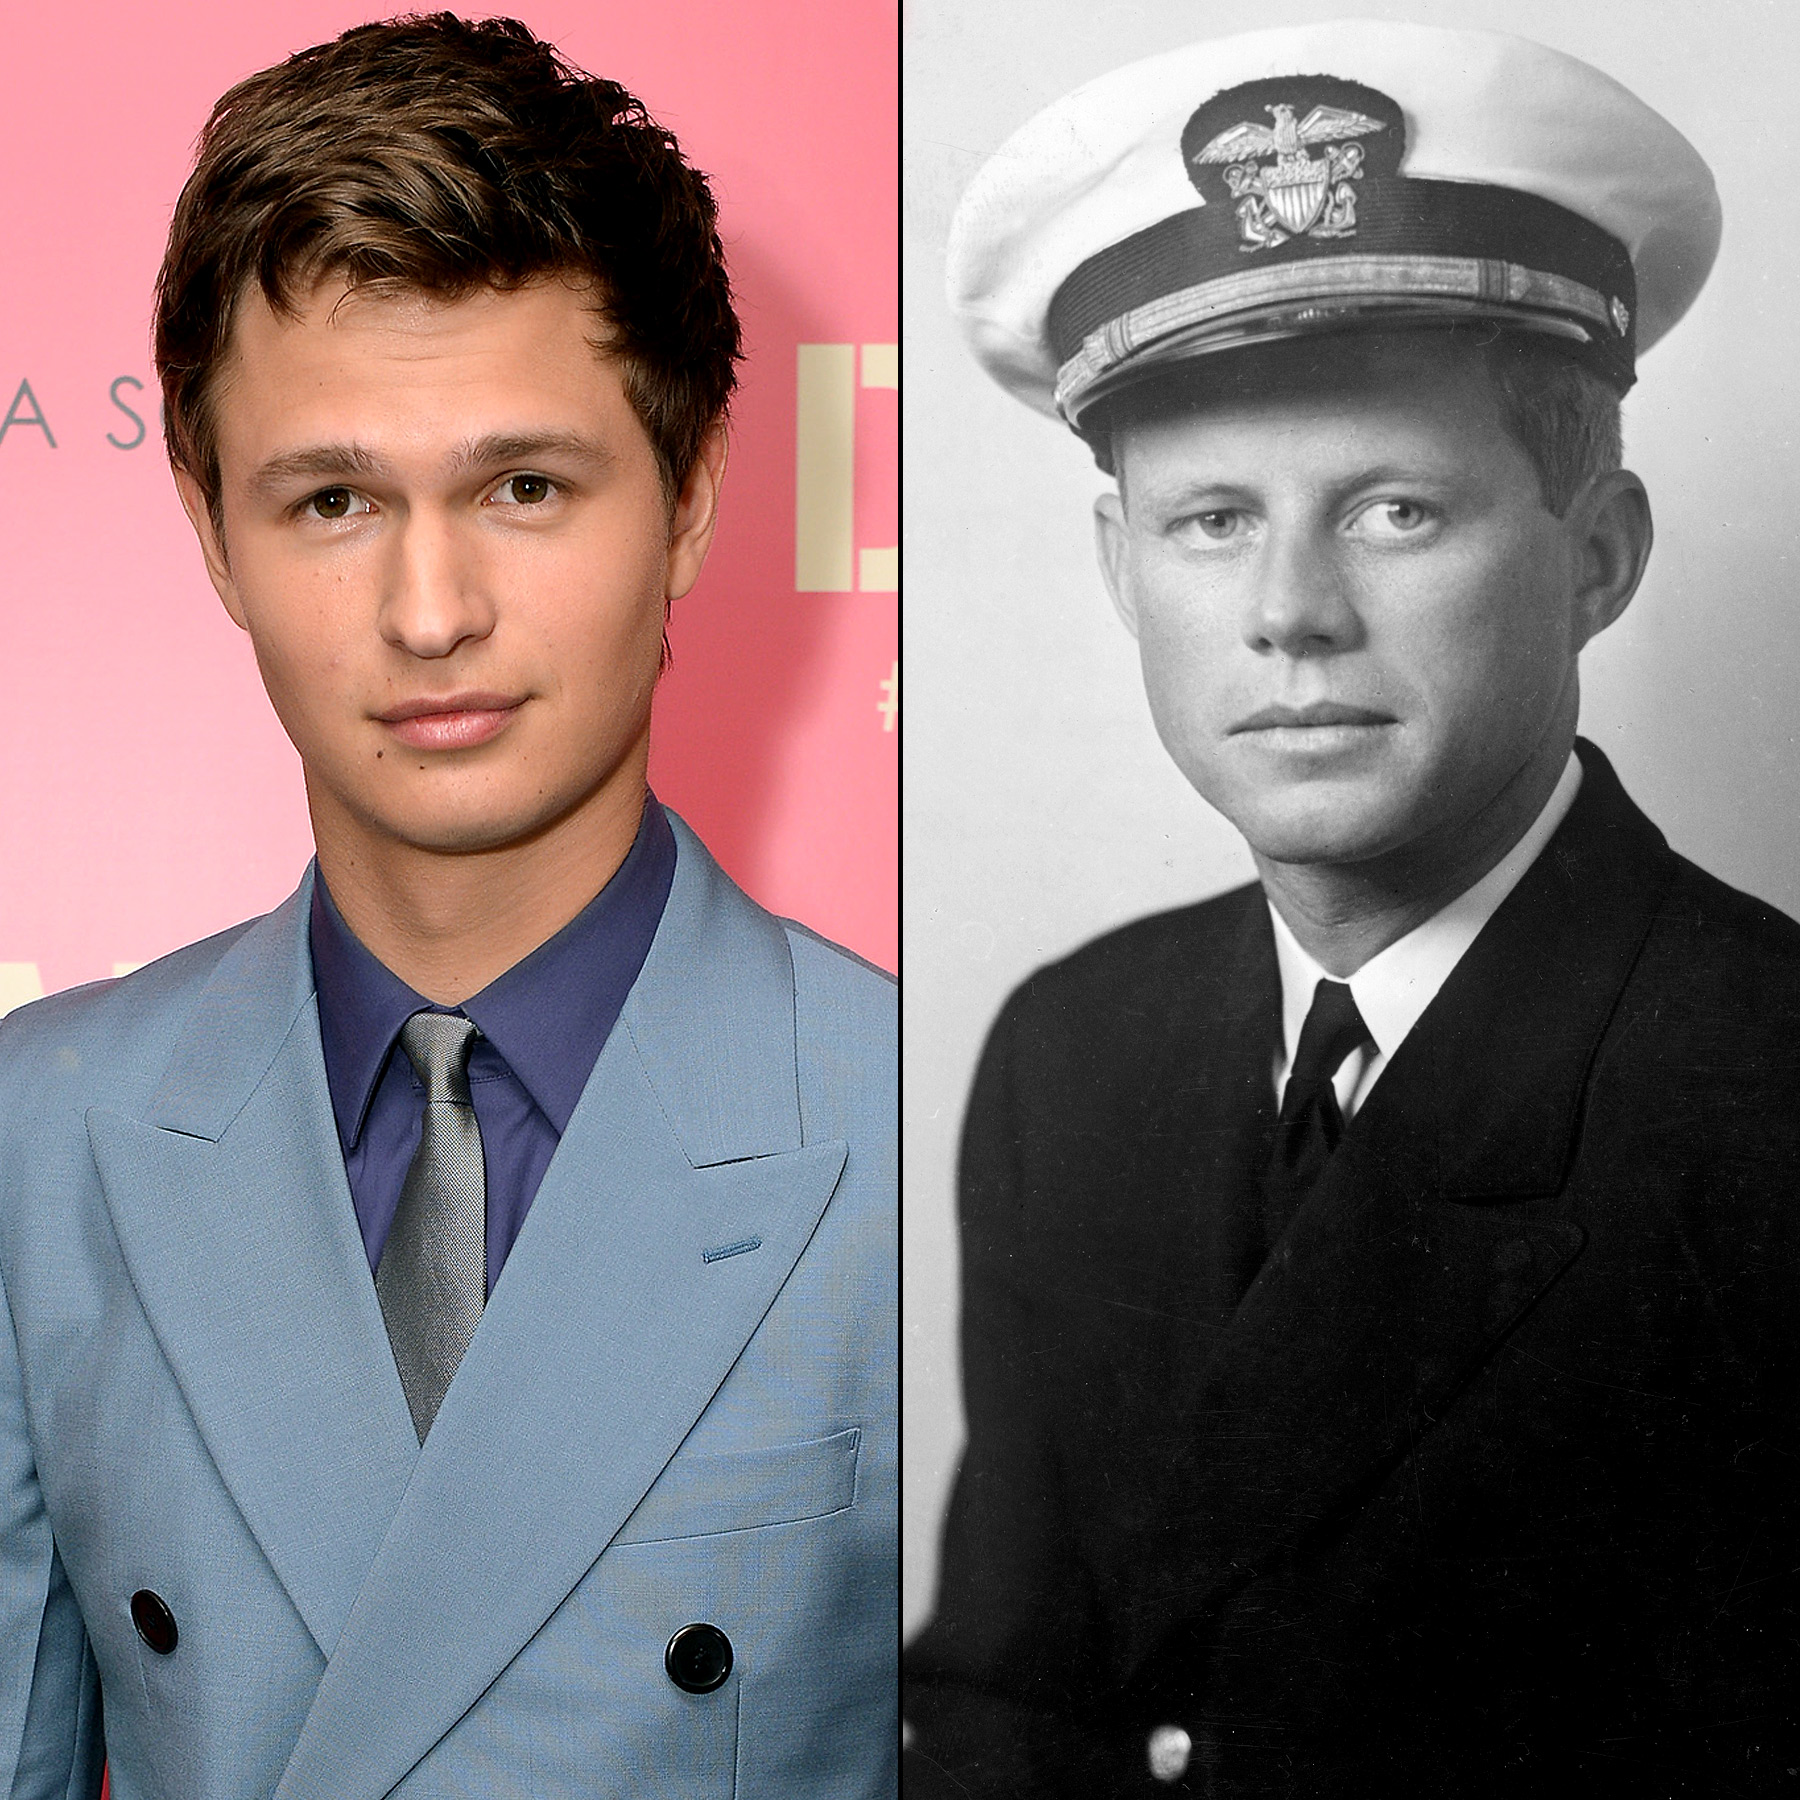 Ansel Elgort and JFK